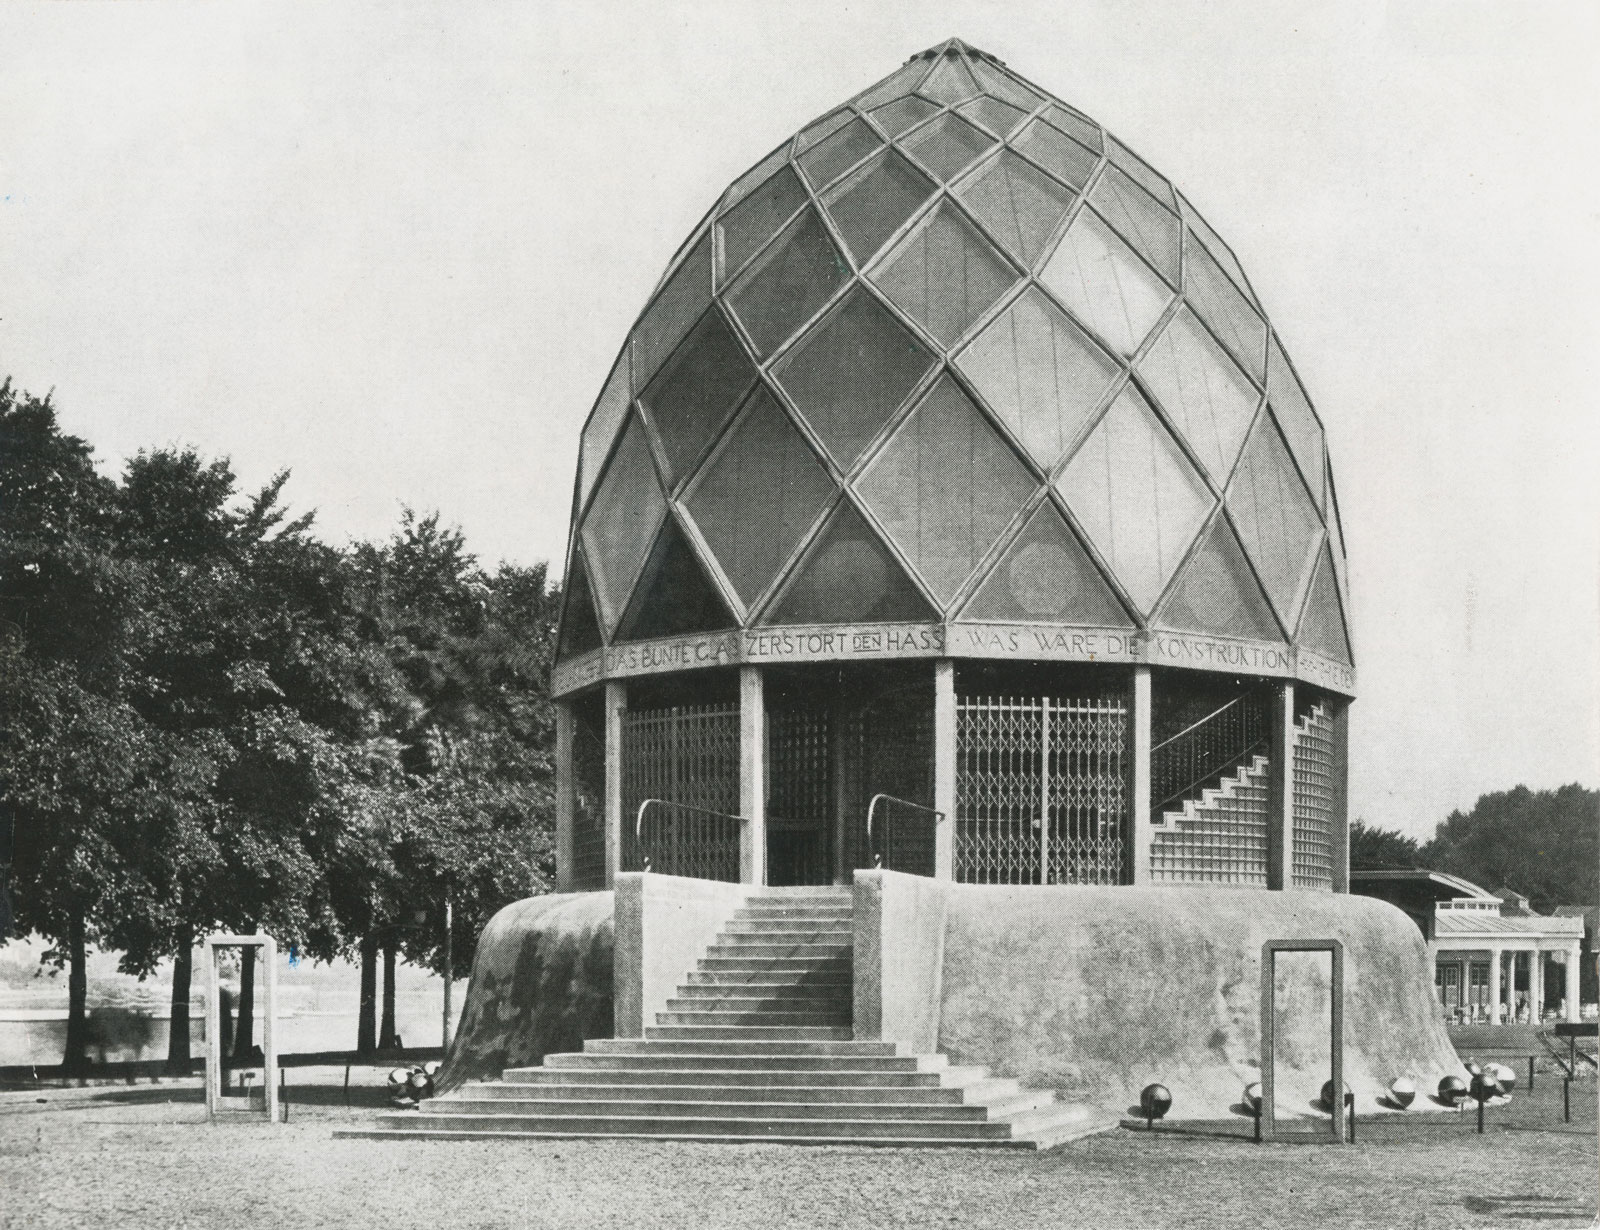 Bruno Taut's Glashaus at the Werkbundausstellung in Cologne, Germany, 1914